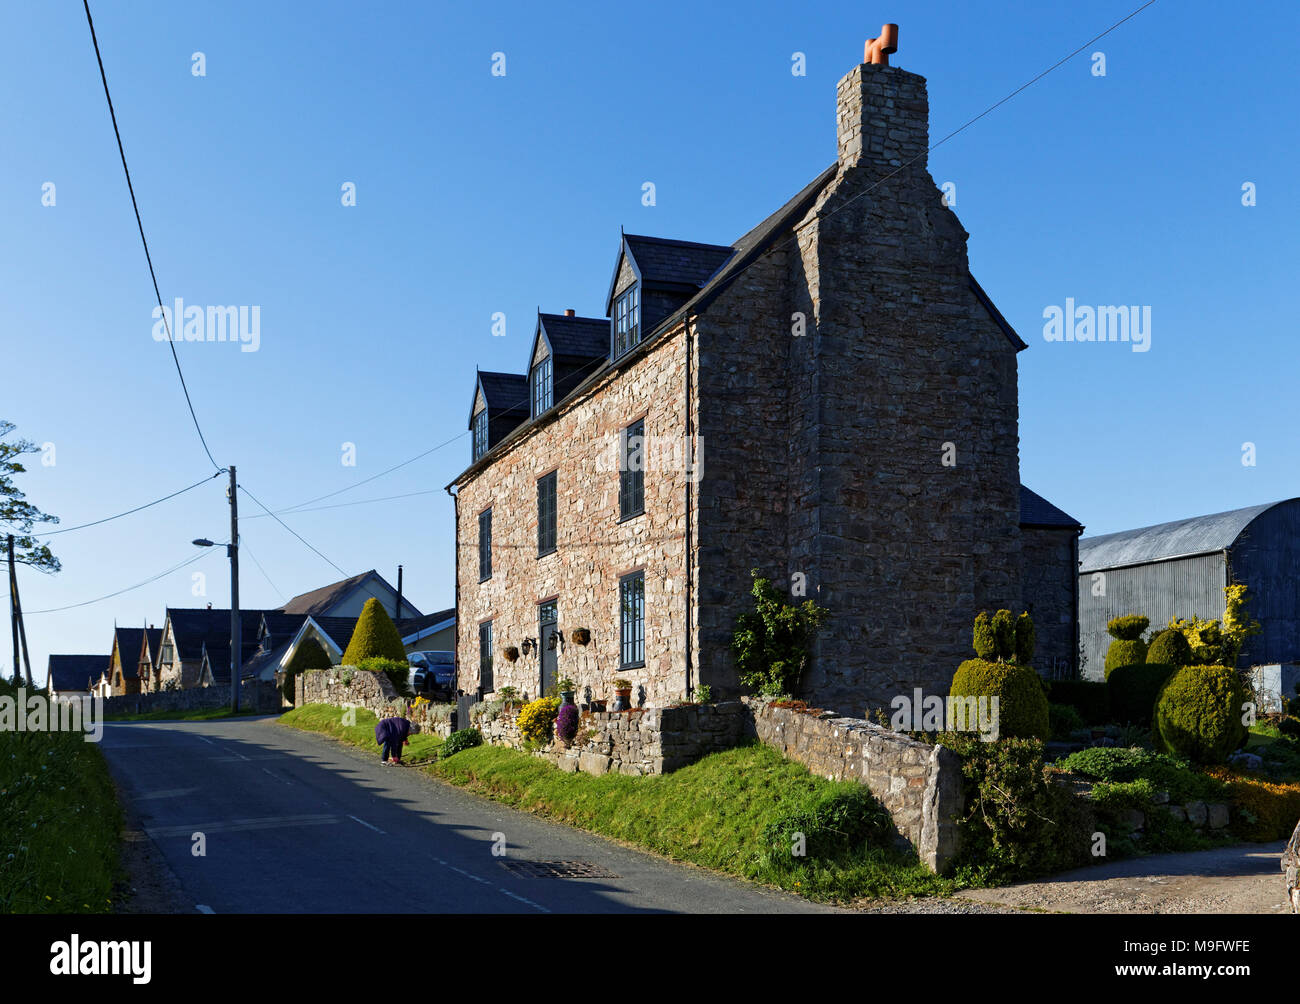 42,506.01576 longtime married woman living in a 3-story 500 yr old stone house, that was once a pub tavern - Stock Image